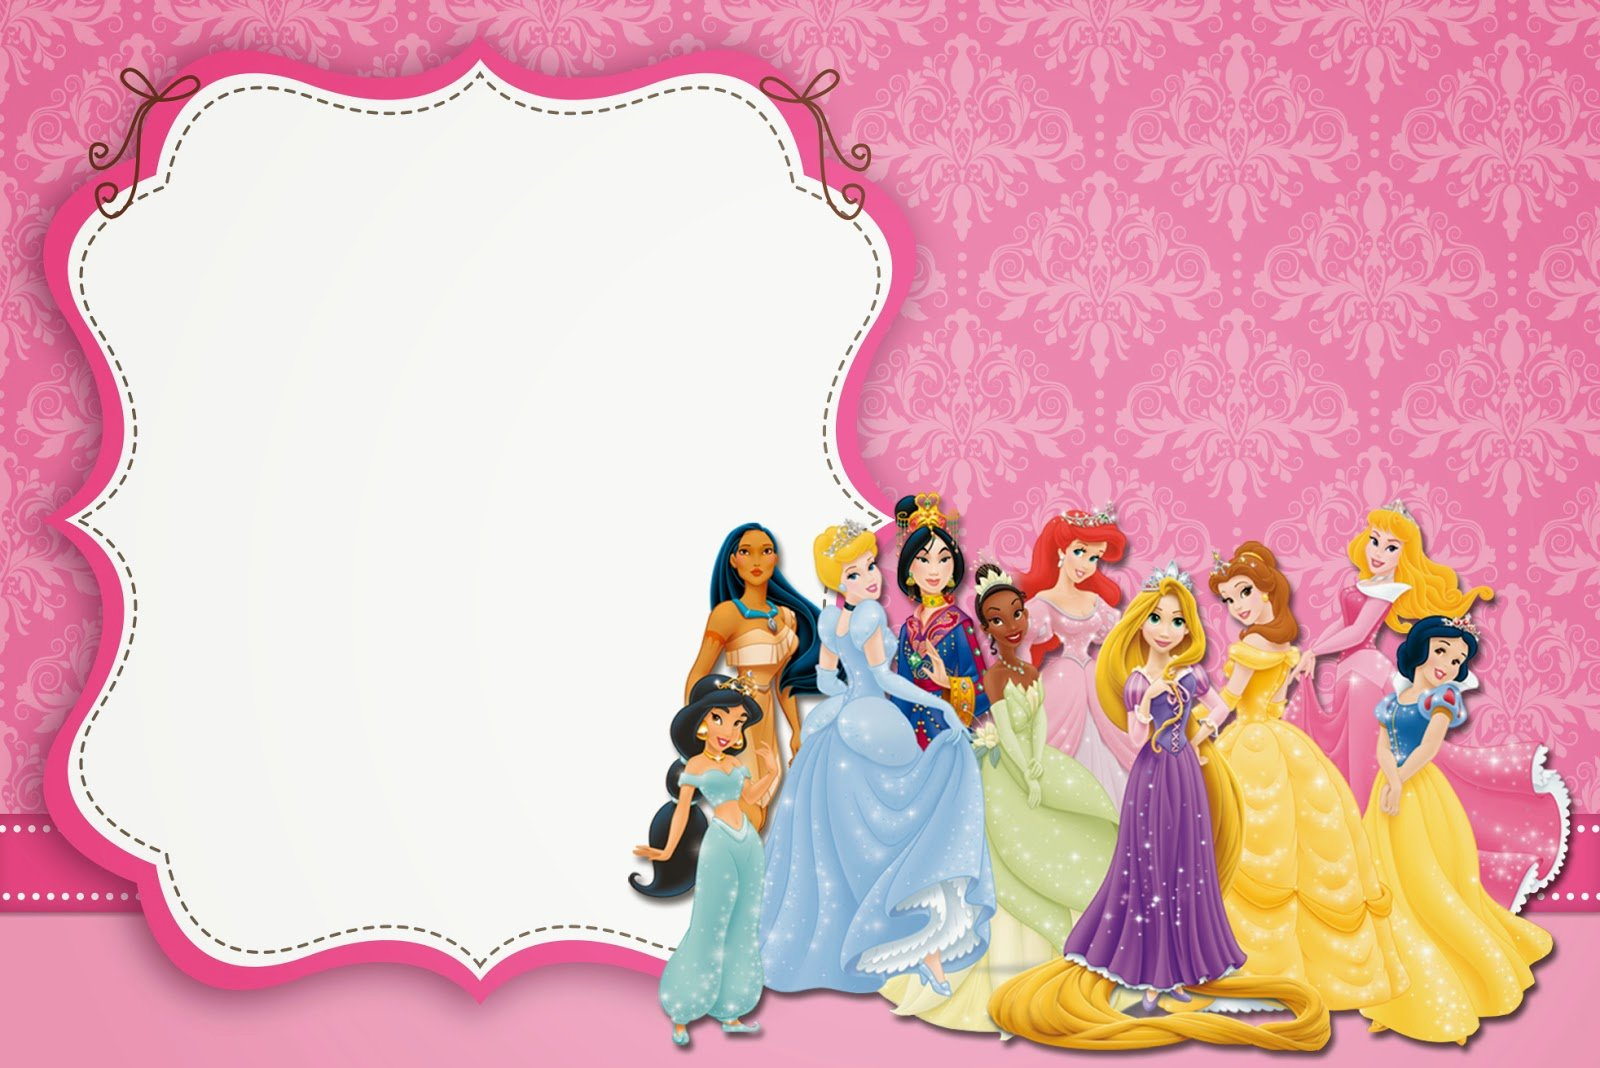 Princess Party Invitation Template Unique Disney Princess Party Free Printable Party Invitations